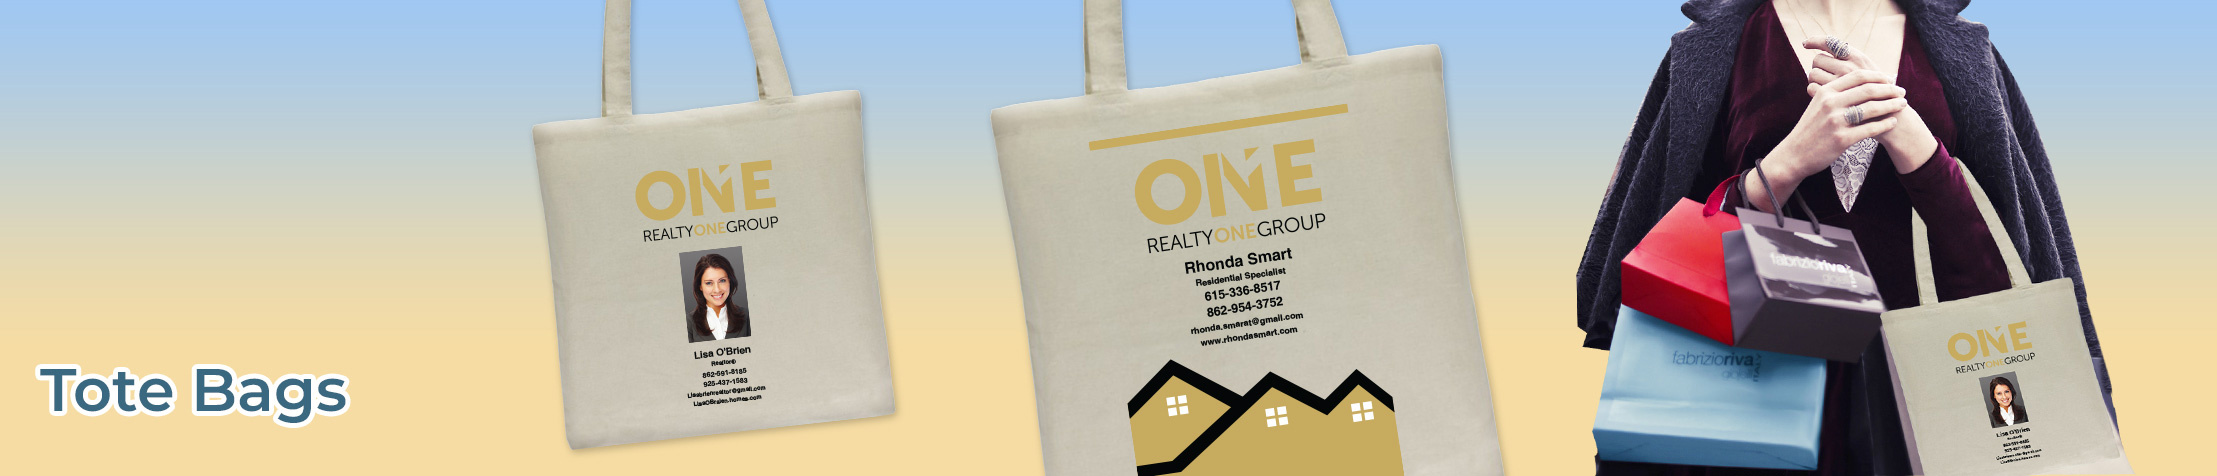 Realty One Group Real Estate Tote Bags - Realty One Group  personalized realtor promotional products | BestPrintBuy.com